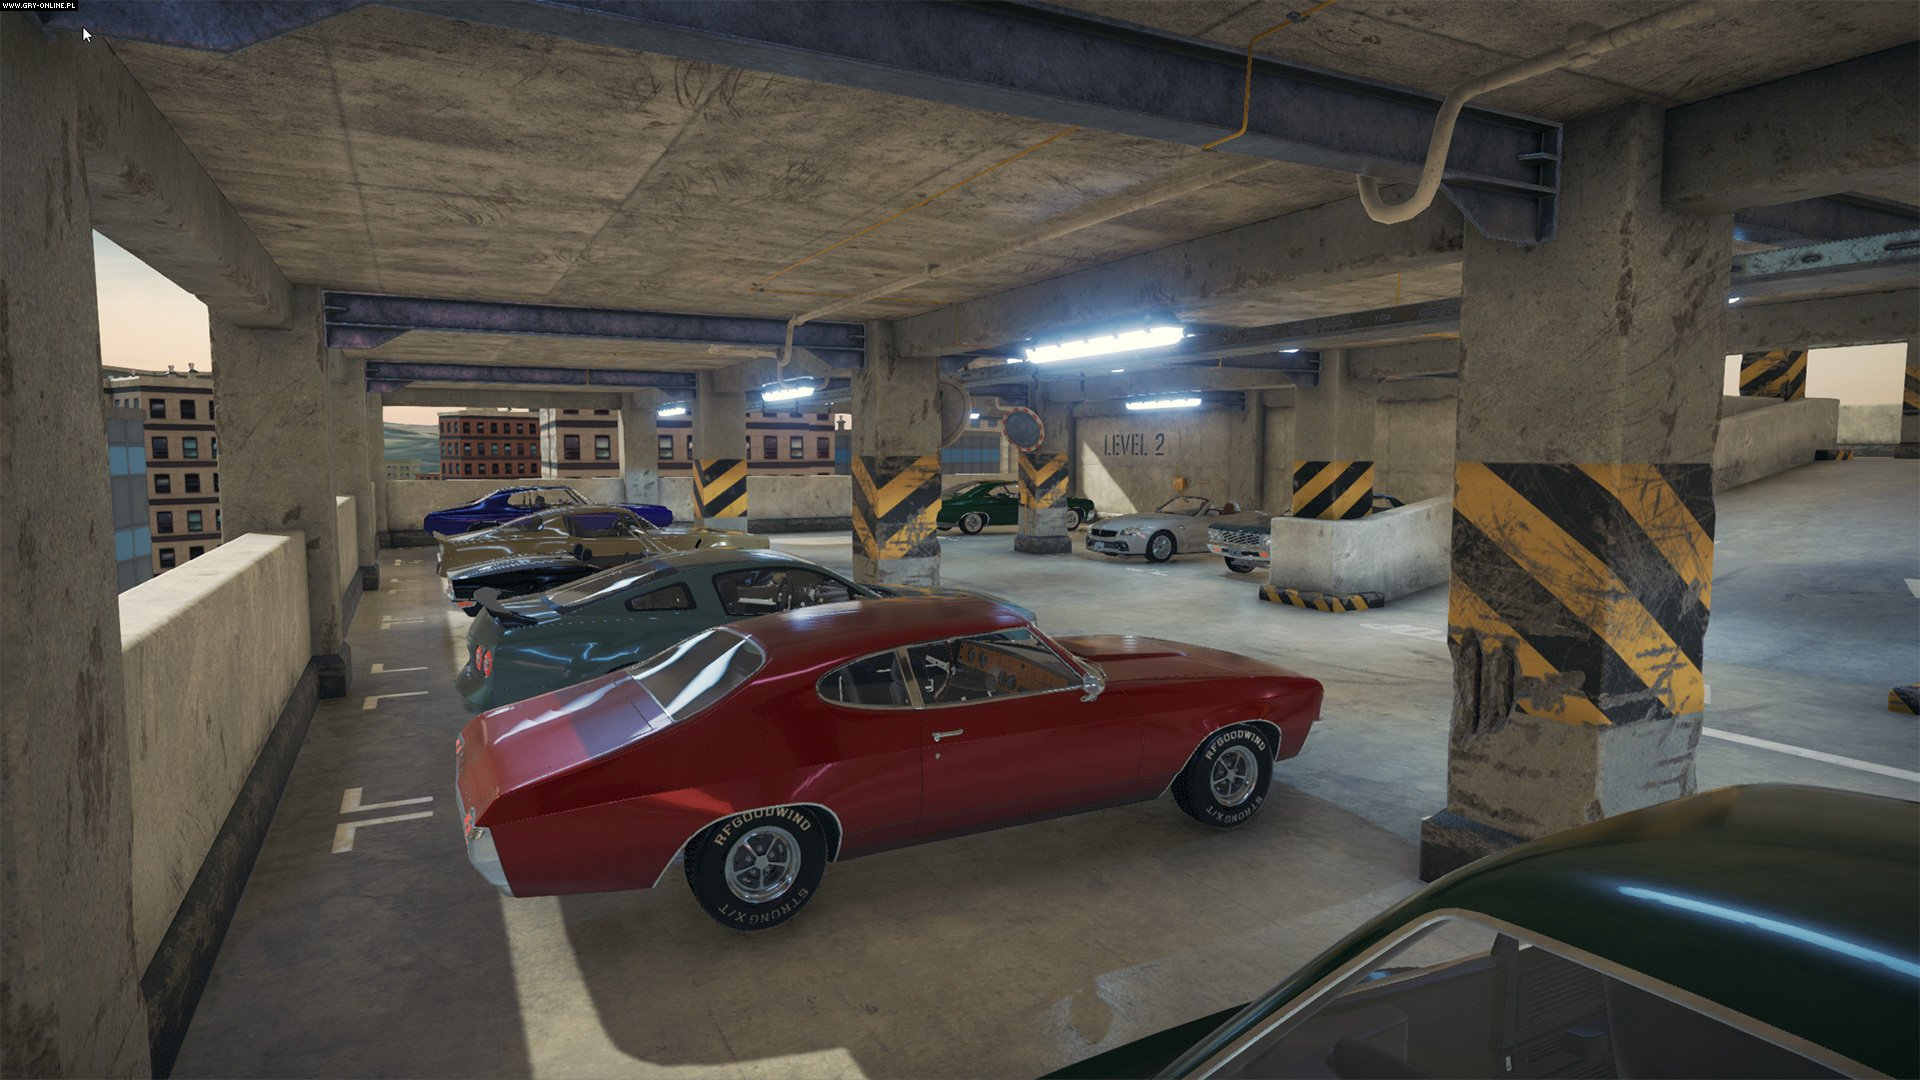 Car Mechanic Simulator 2018 PC, PS4, XONE, Switch Games Image 9/11, Red Dot Games, PlayWay